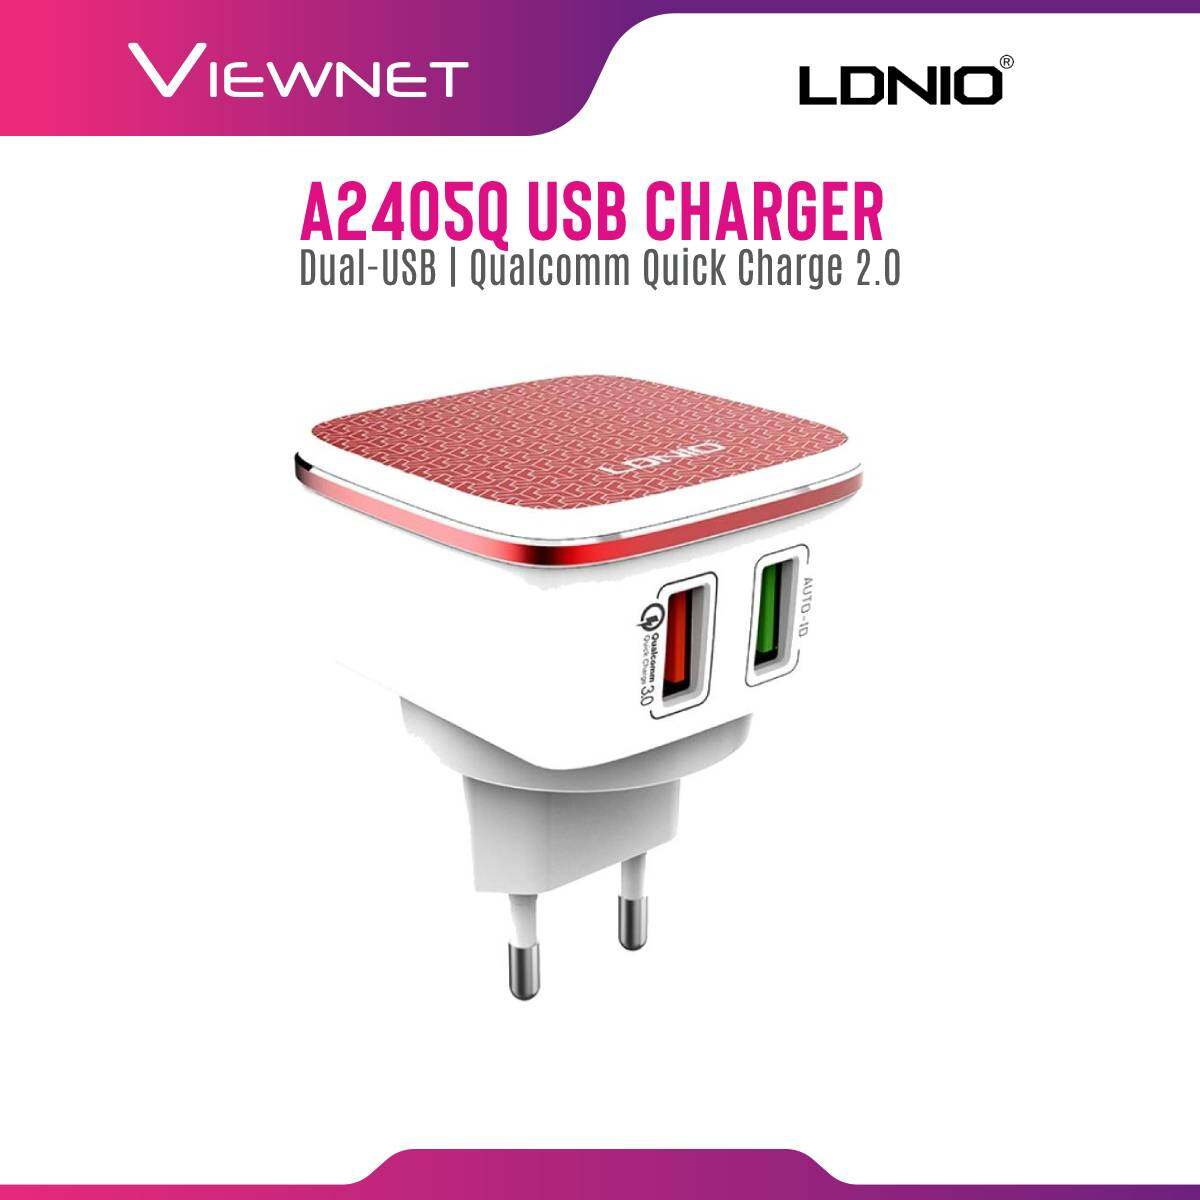 Ldnio A2405Q 4.2A Auto ID Dual-USB Qualcomm Quick Charge 2.0 EU UK US Travel Adapter Wall Charger